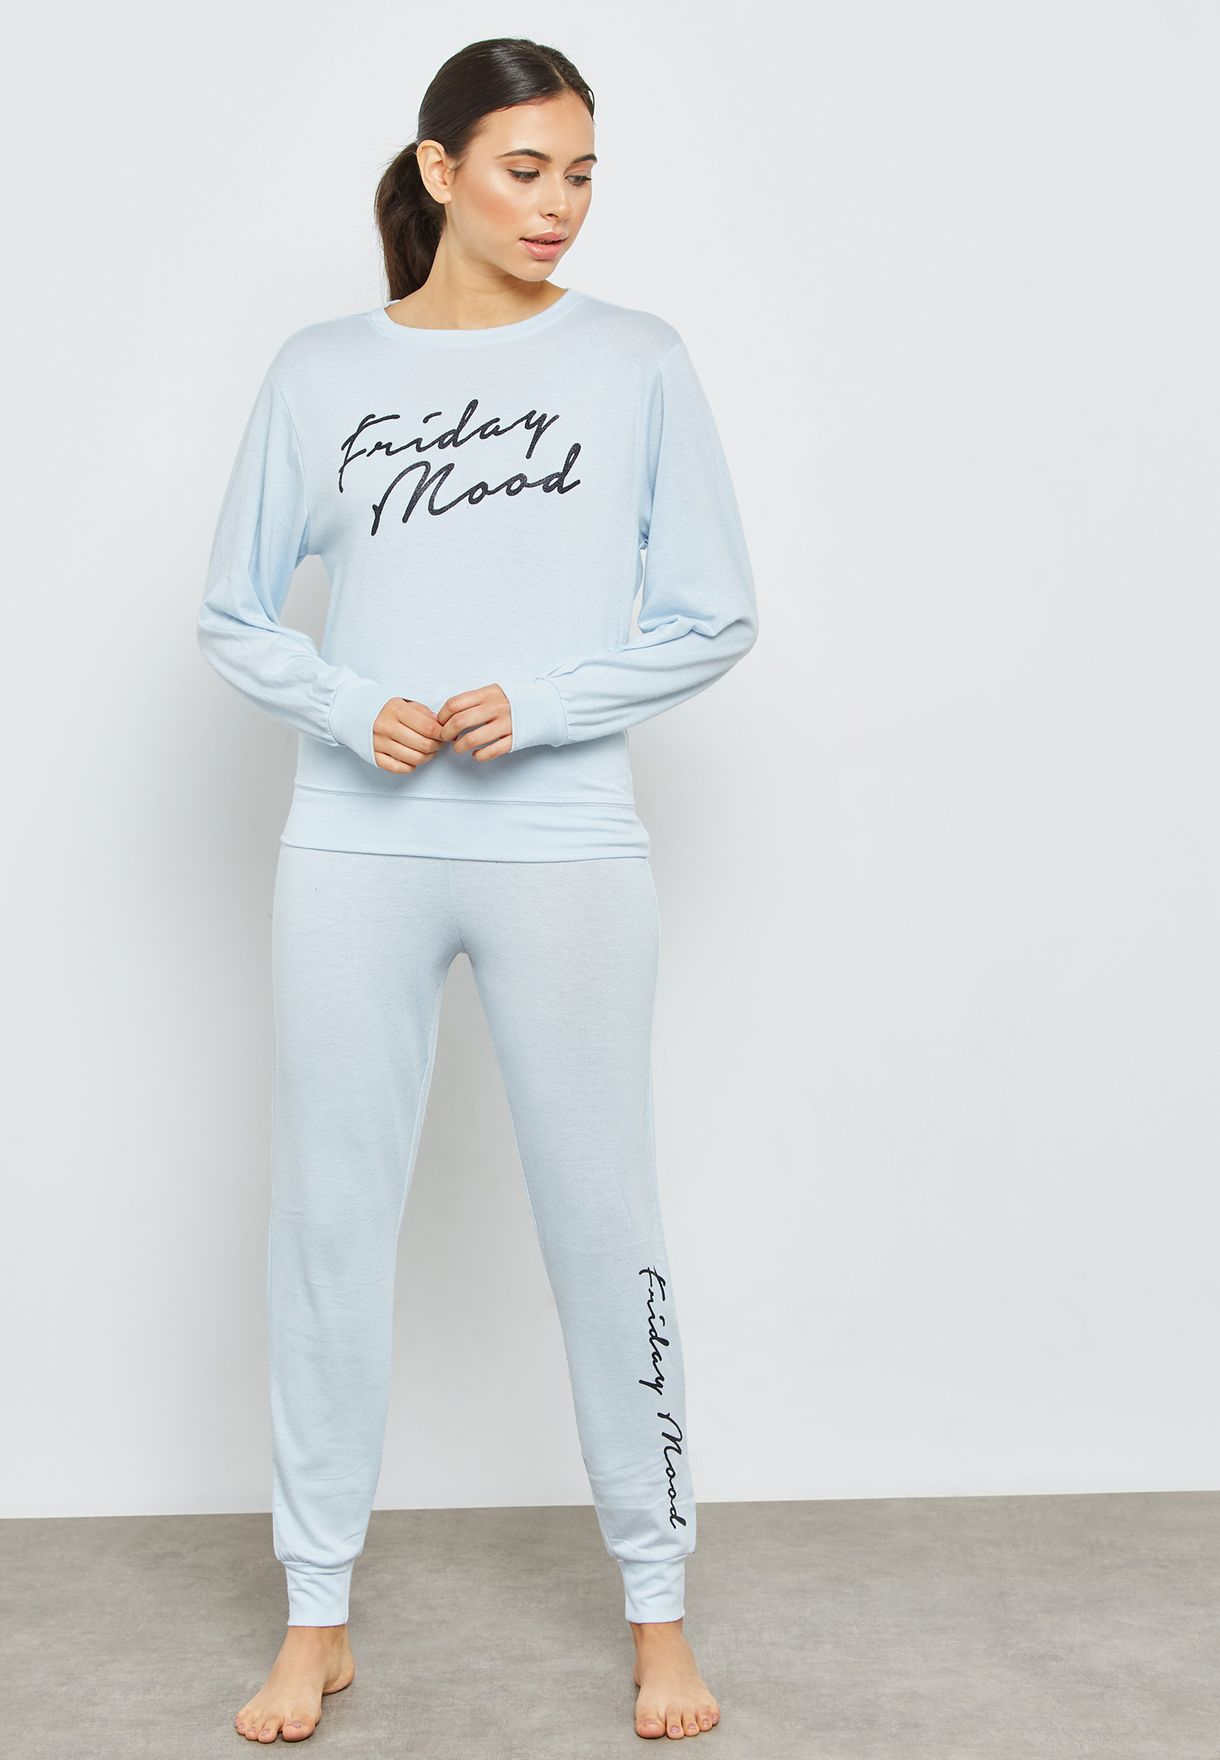 Slogan Night Sweatshirt